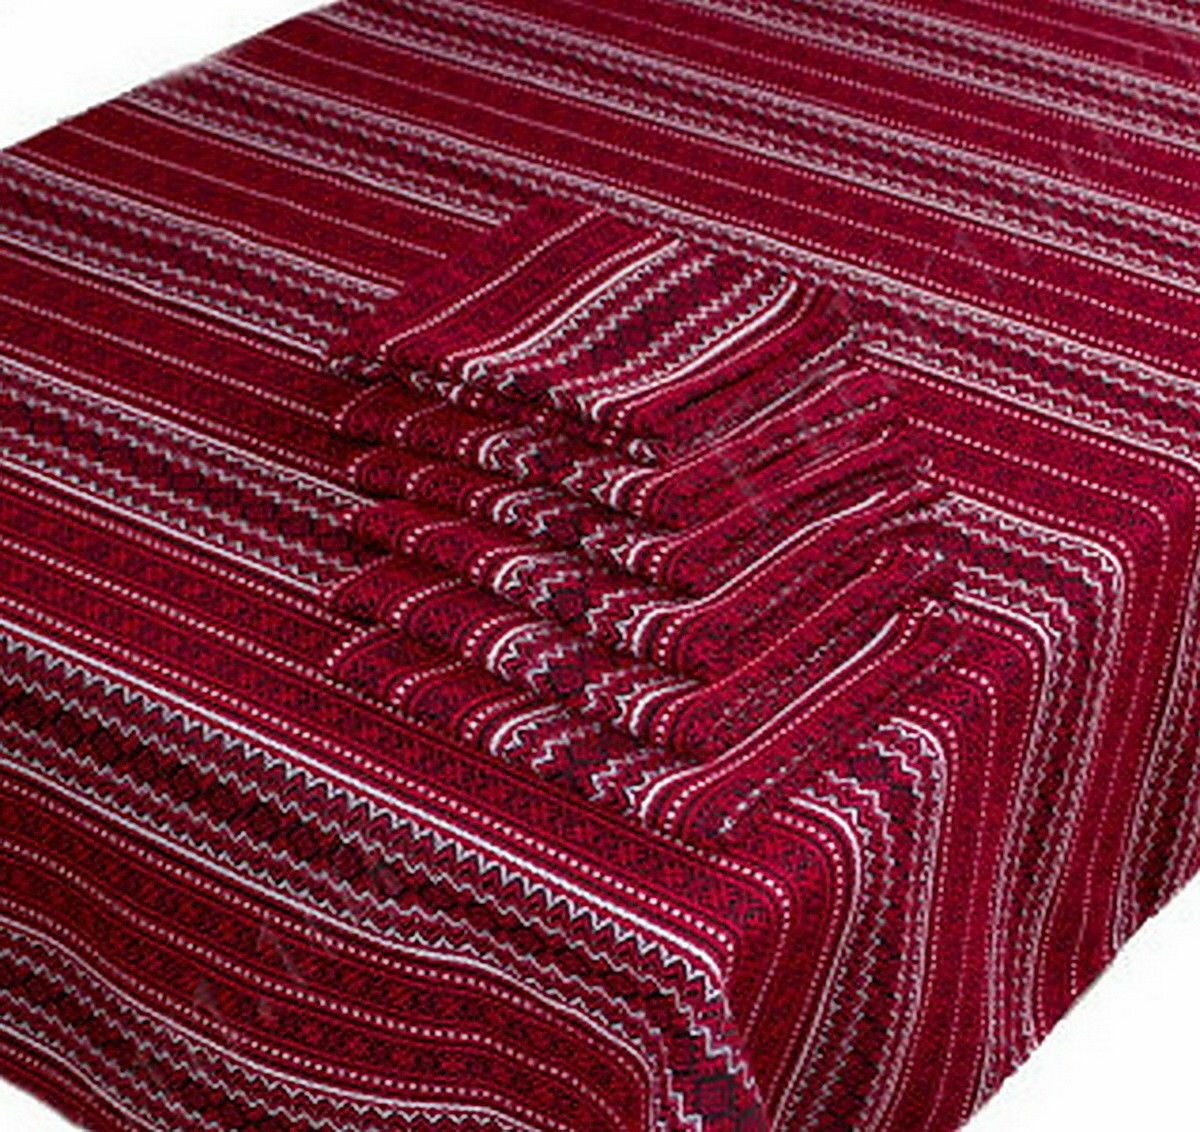 Ukrainian Woven TABLECLOTH + 6 NAPKINS Embroidery GrößeS  FarbeS  Mother's Day